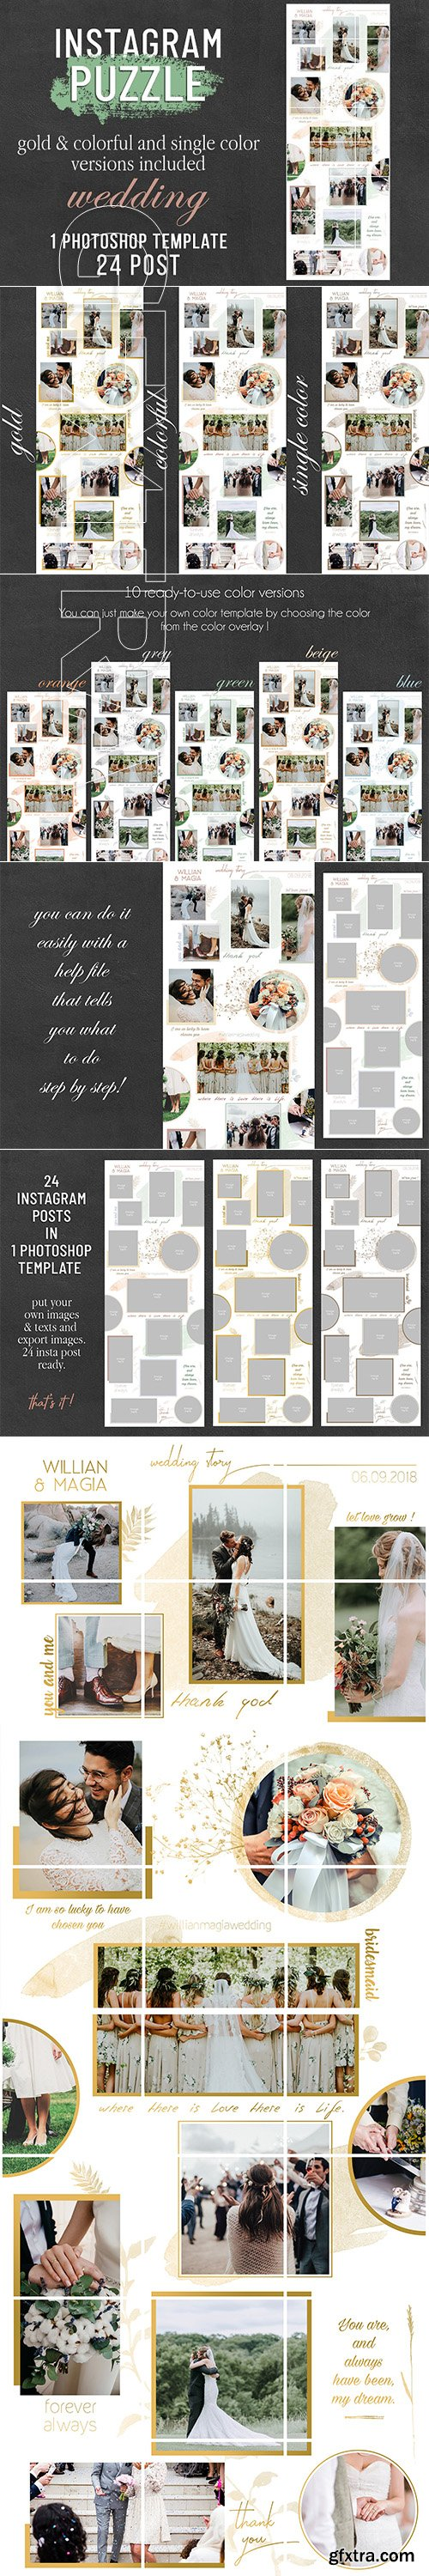 CreativeMarket - Instagram Puzzle Template - Wedding 2916640